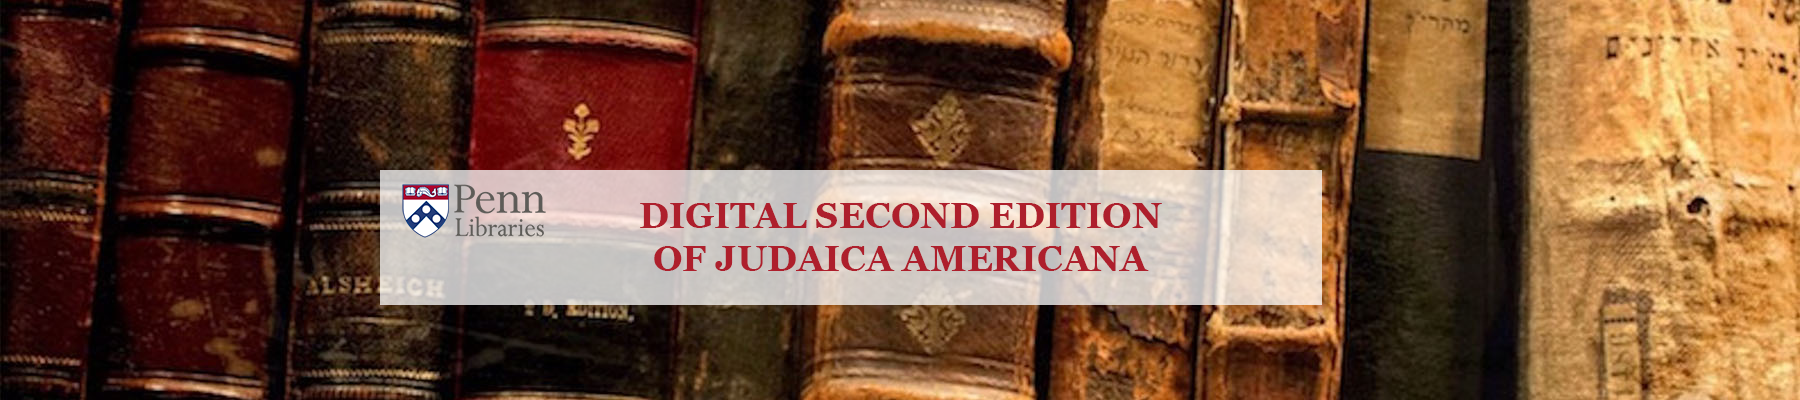 "Header image for the site: shelf of books in the background with white box at center. Penn Libraries logo followed by ""Digital Second Edition of Judaica Americana"""